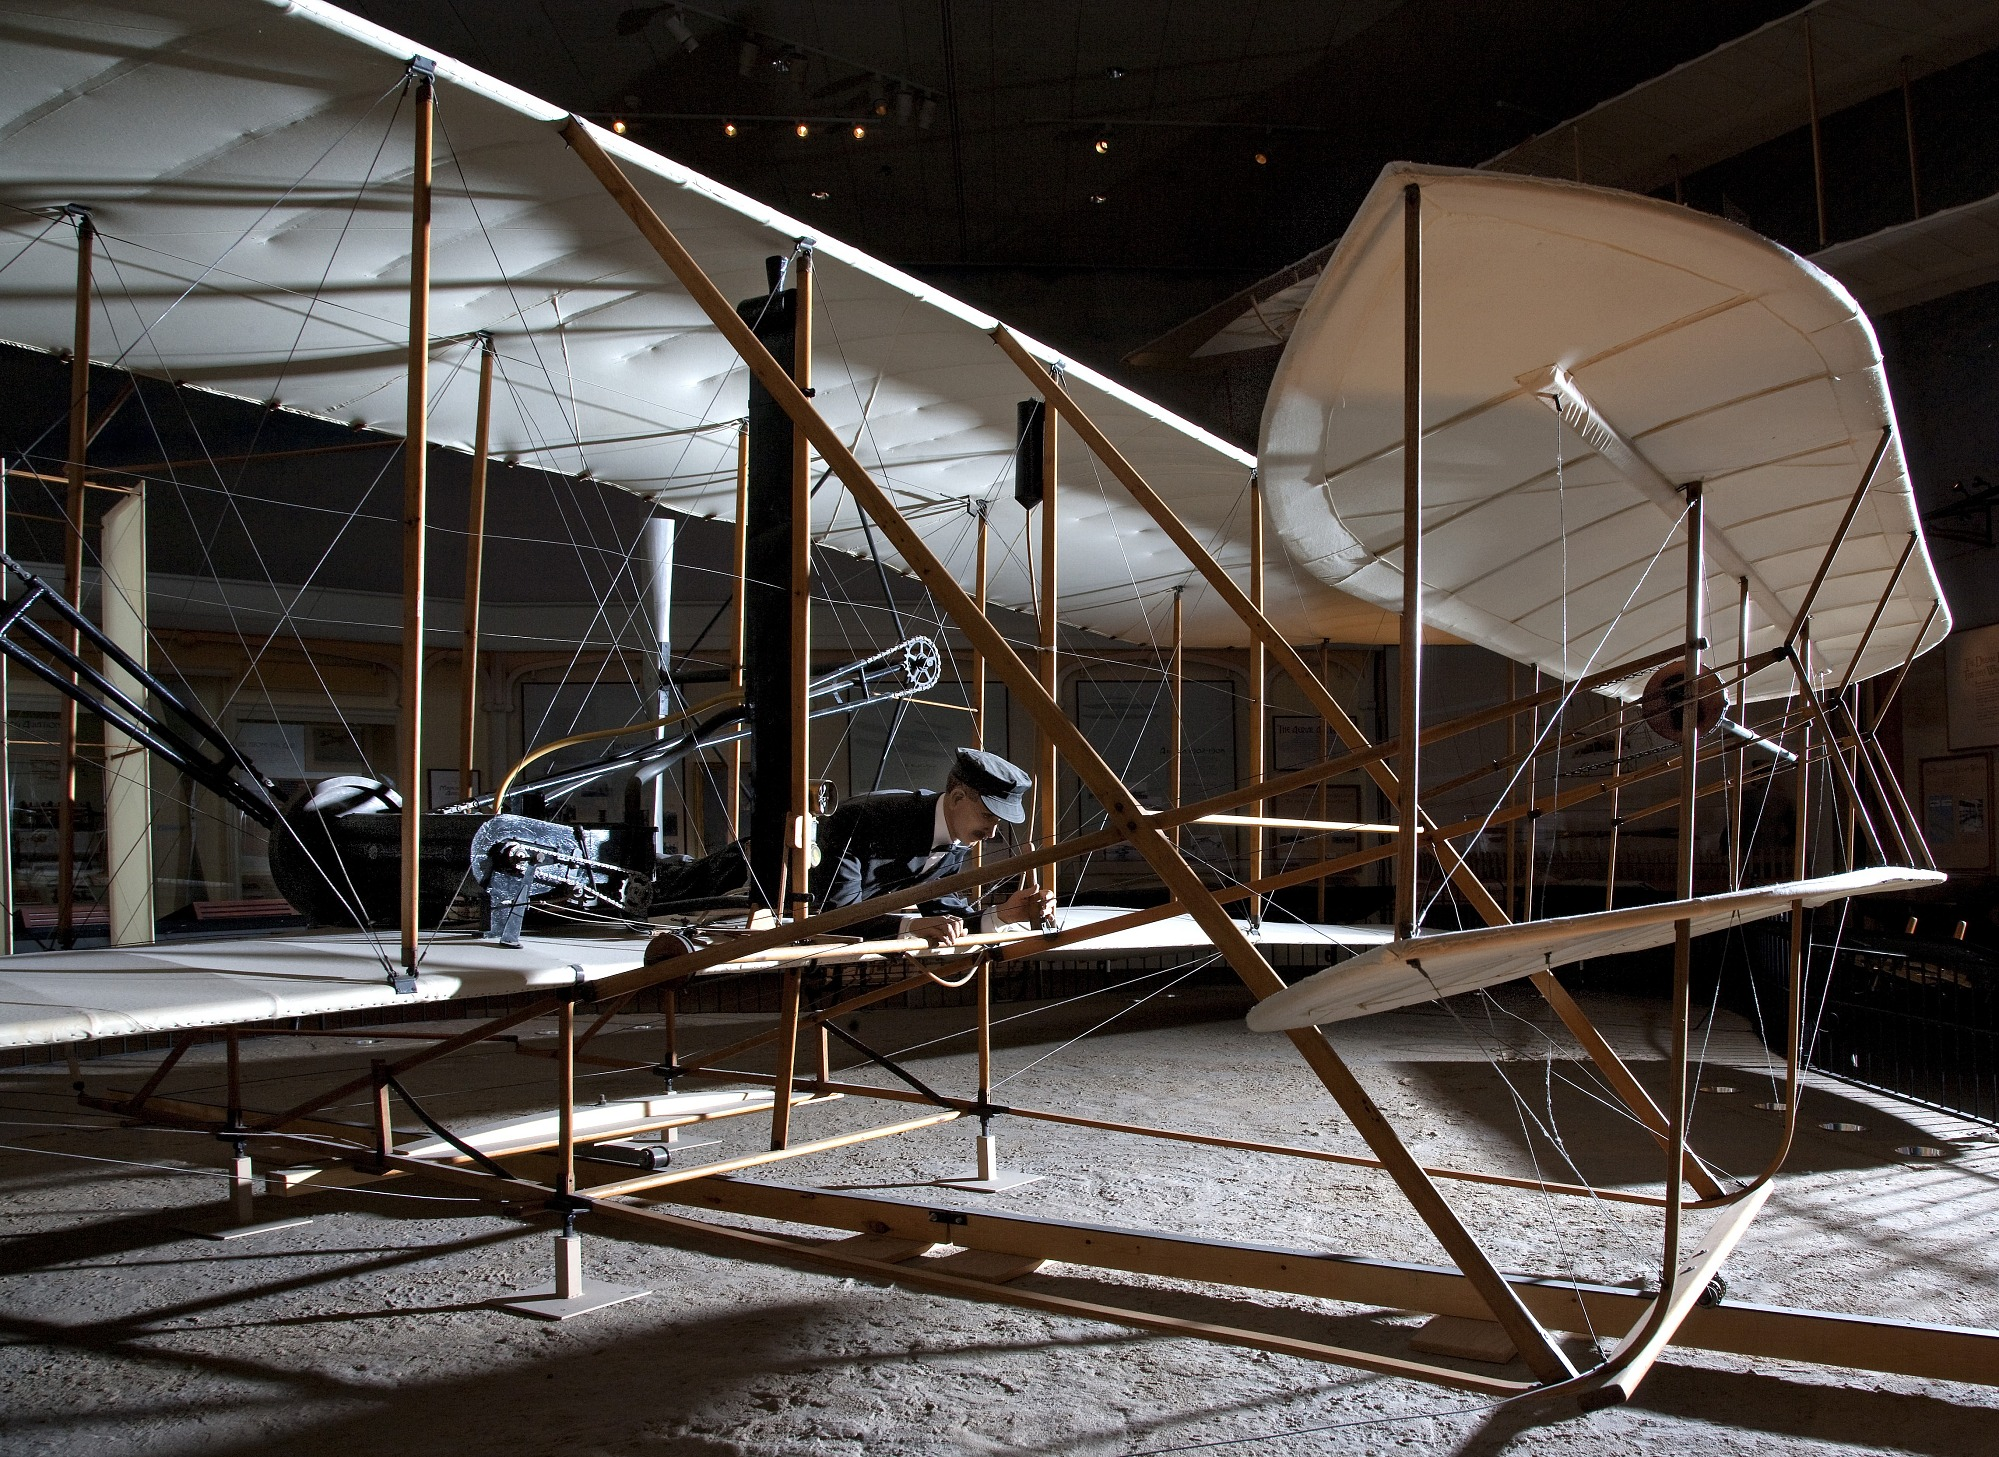 1903 Wright Flyer Important Parts Of An Airplane And What They Do